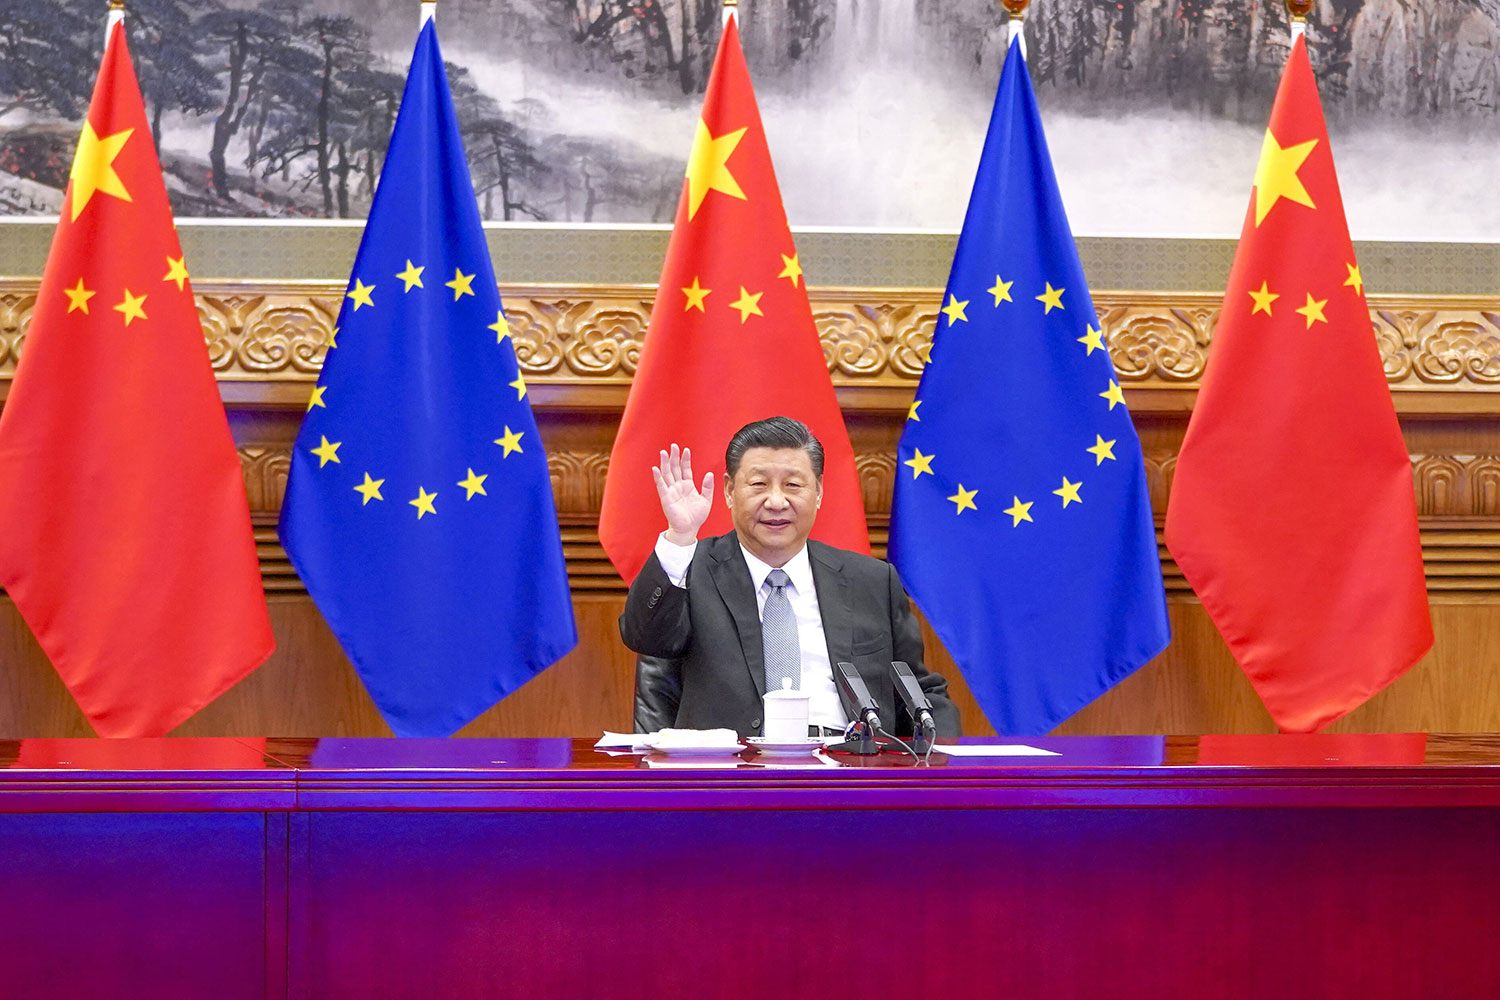 Sanctions put EU-China Investment Deal in Jeopardy